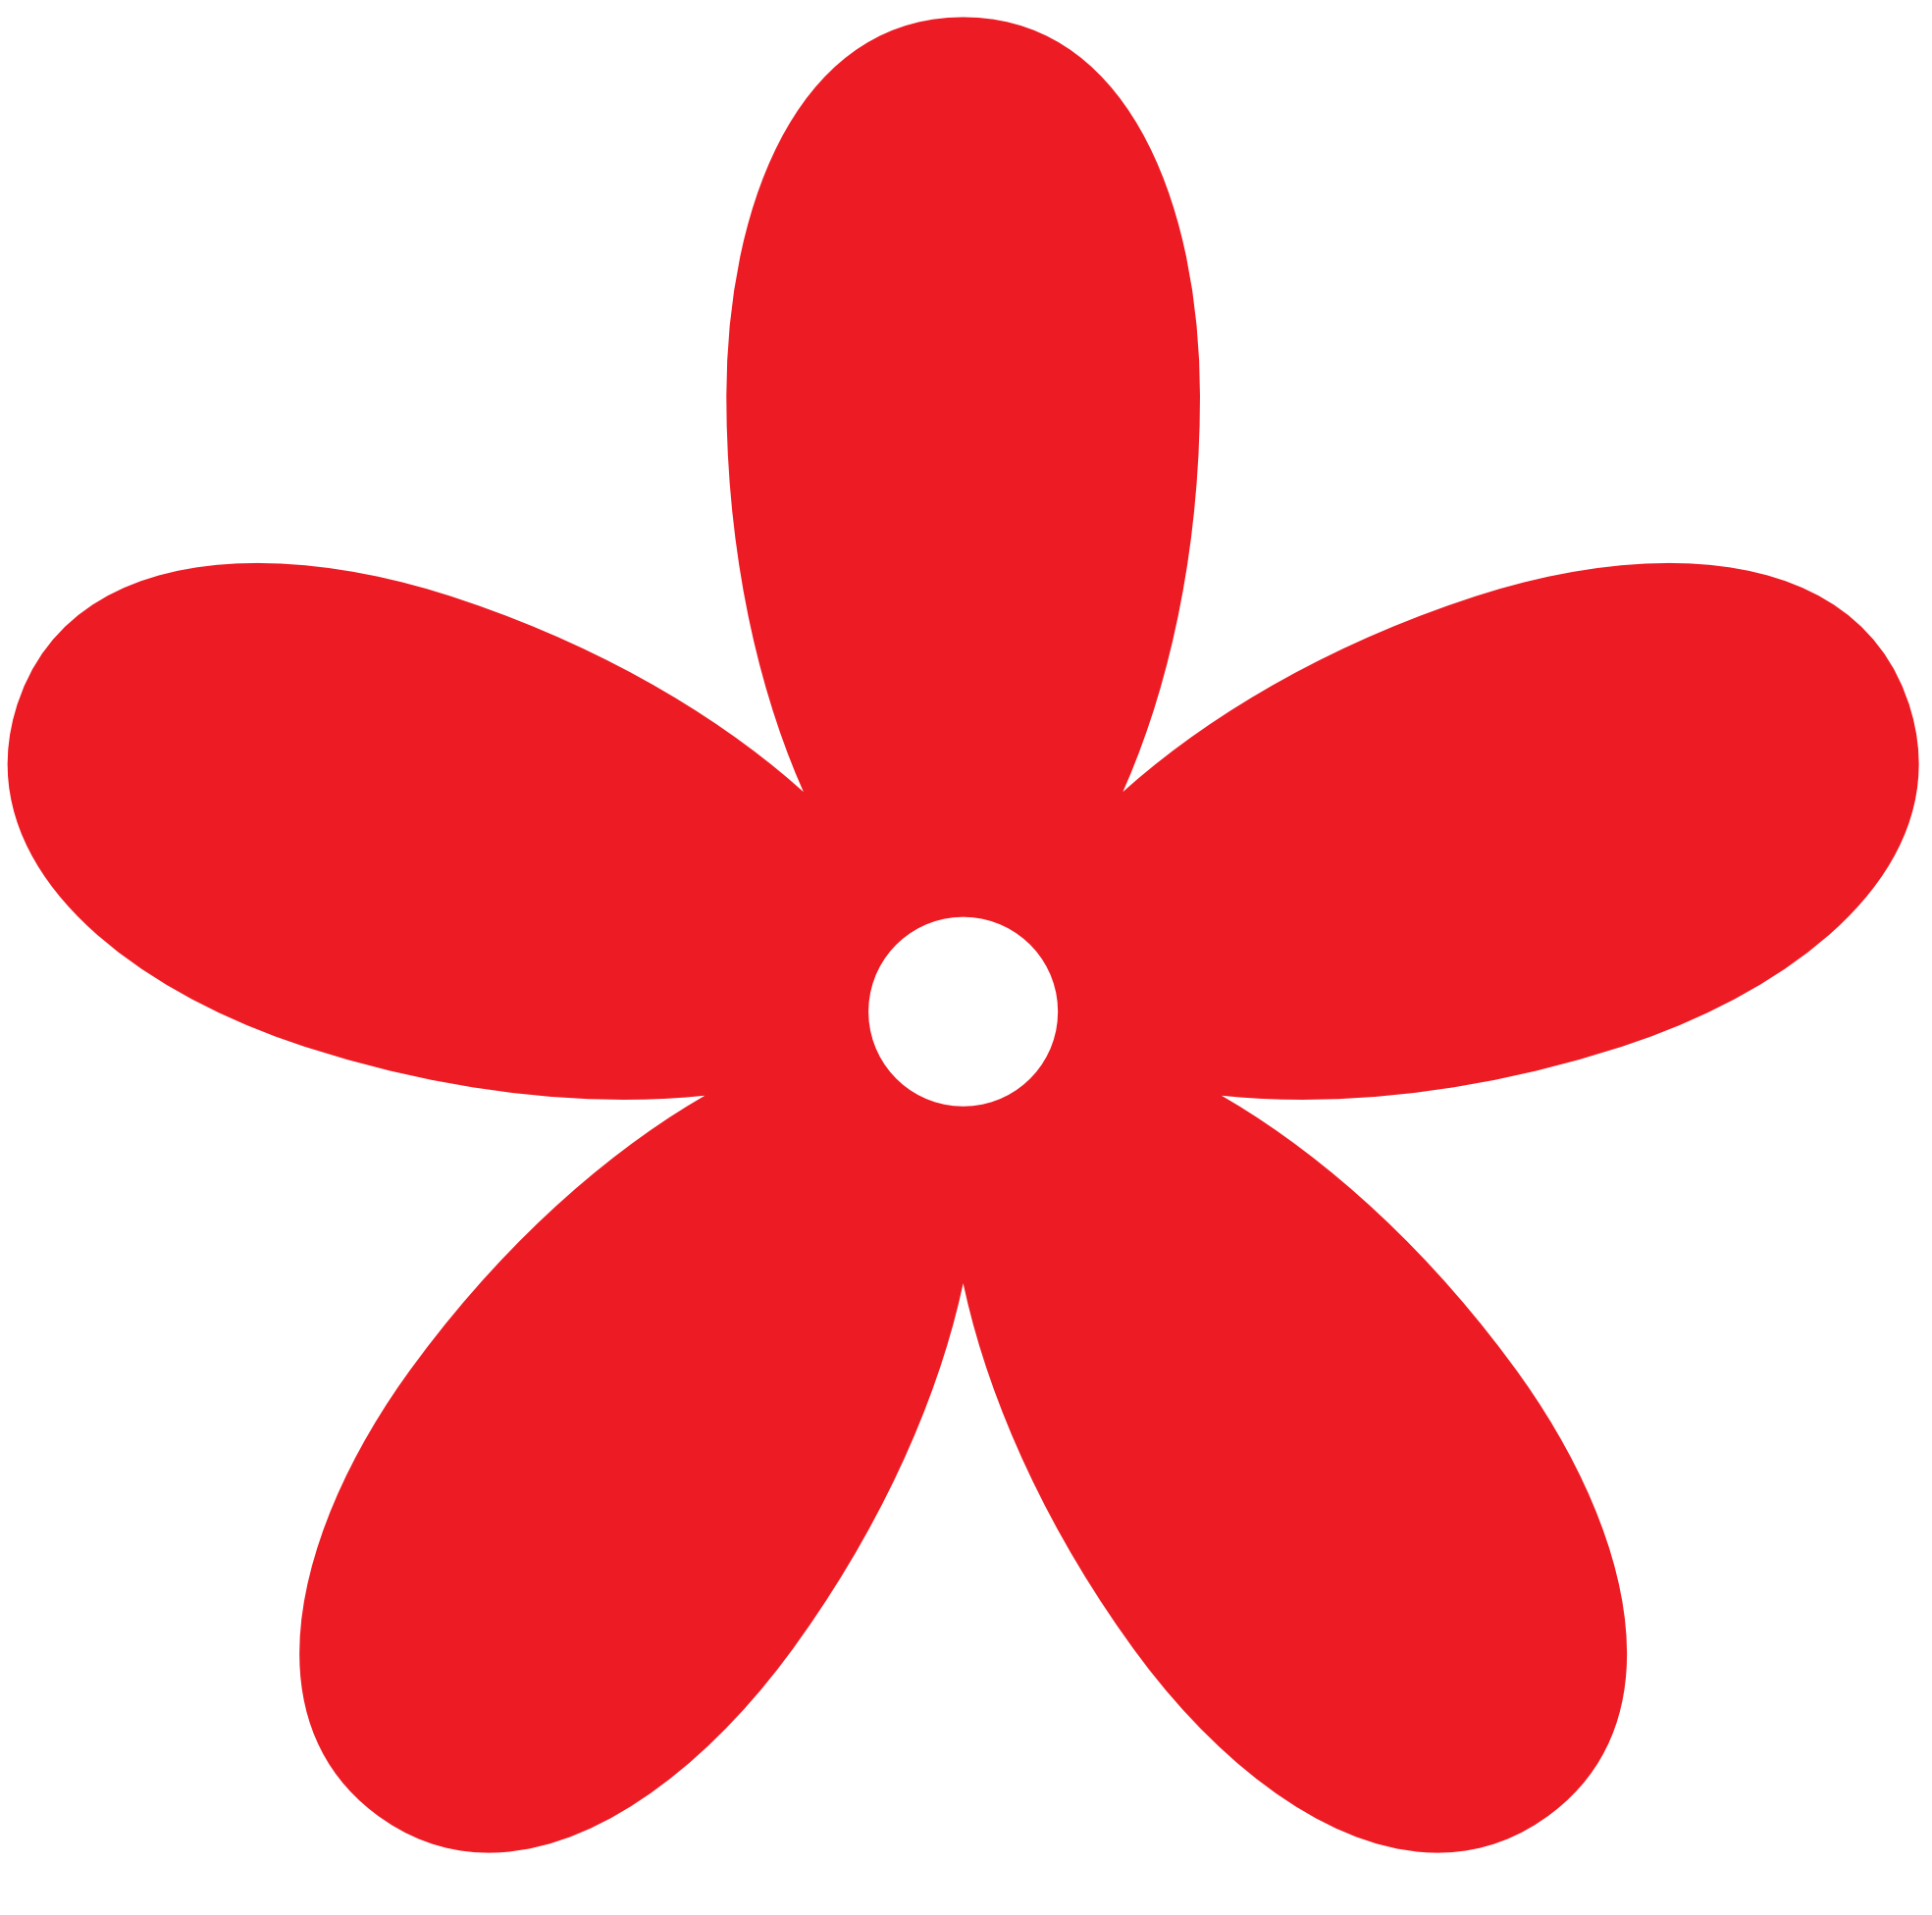 Free Red Flowers Cliparts, Download Free Clip Art, Free Clip